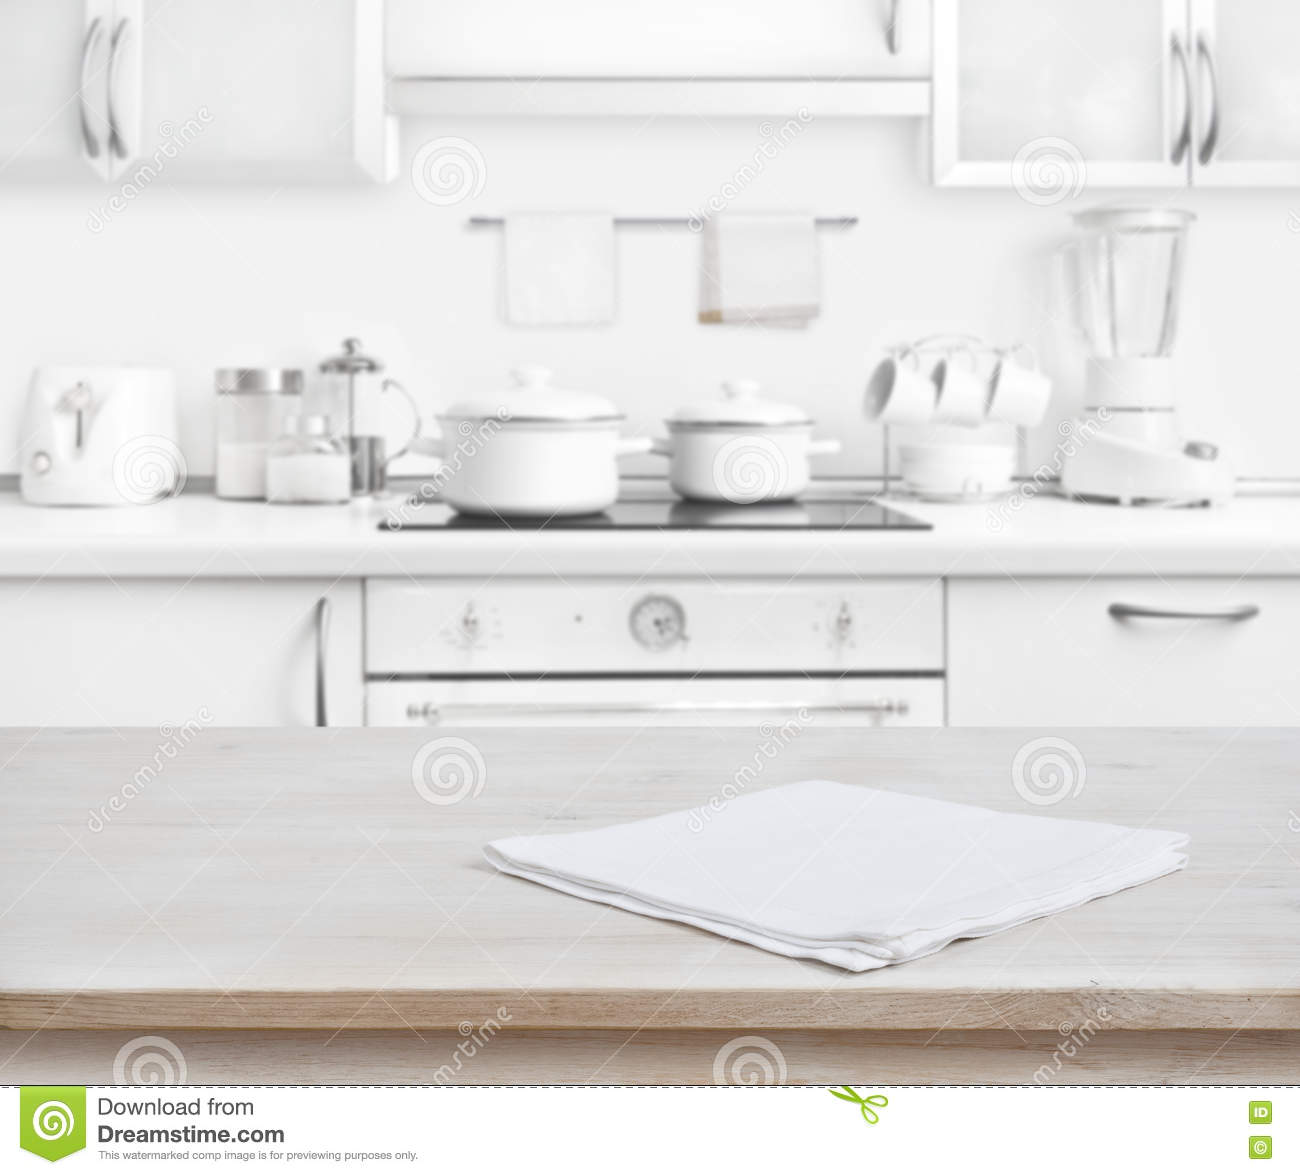 Kitchen Background Image: White Towel On Wooden Table Royalty-Free Stock Photo